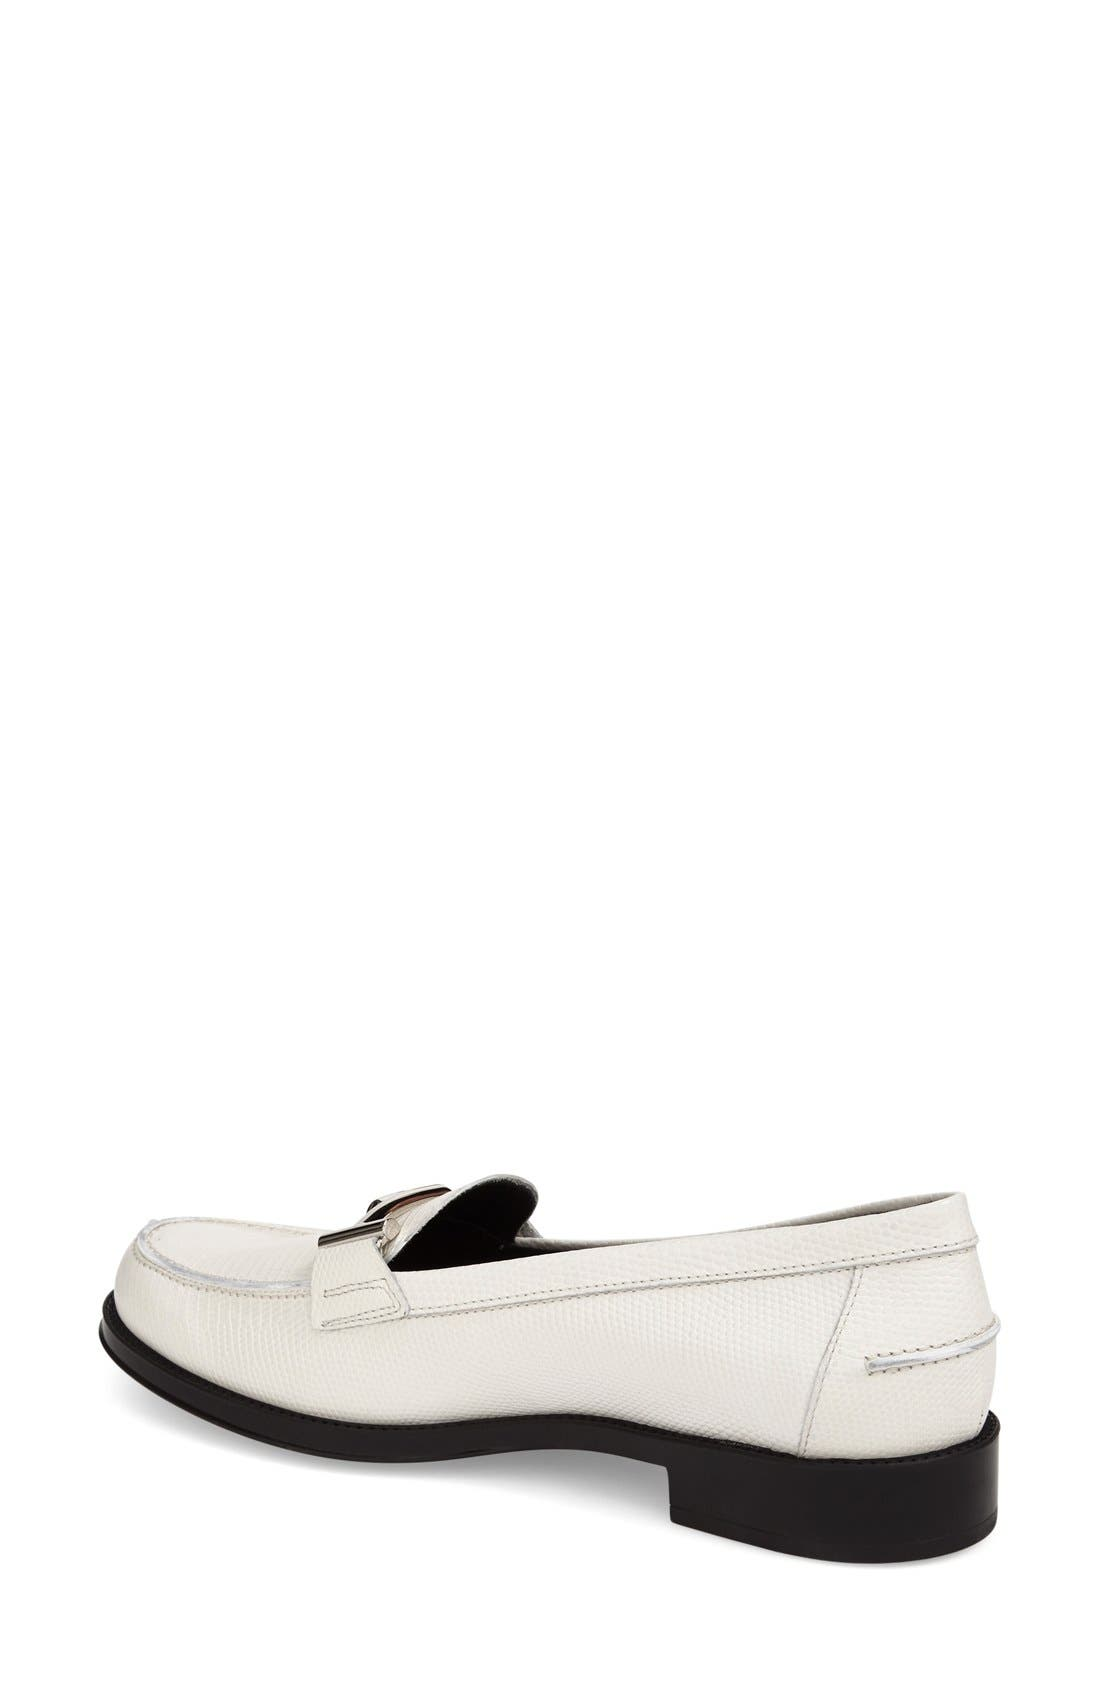 ,                             'Double T' Loafer,                             Alternate thumbnail 10, color,                             100